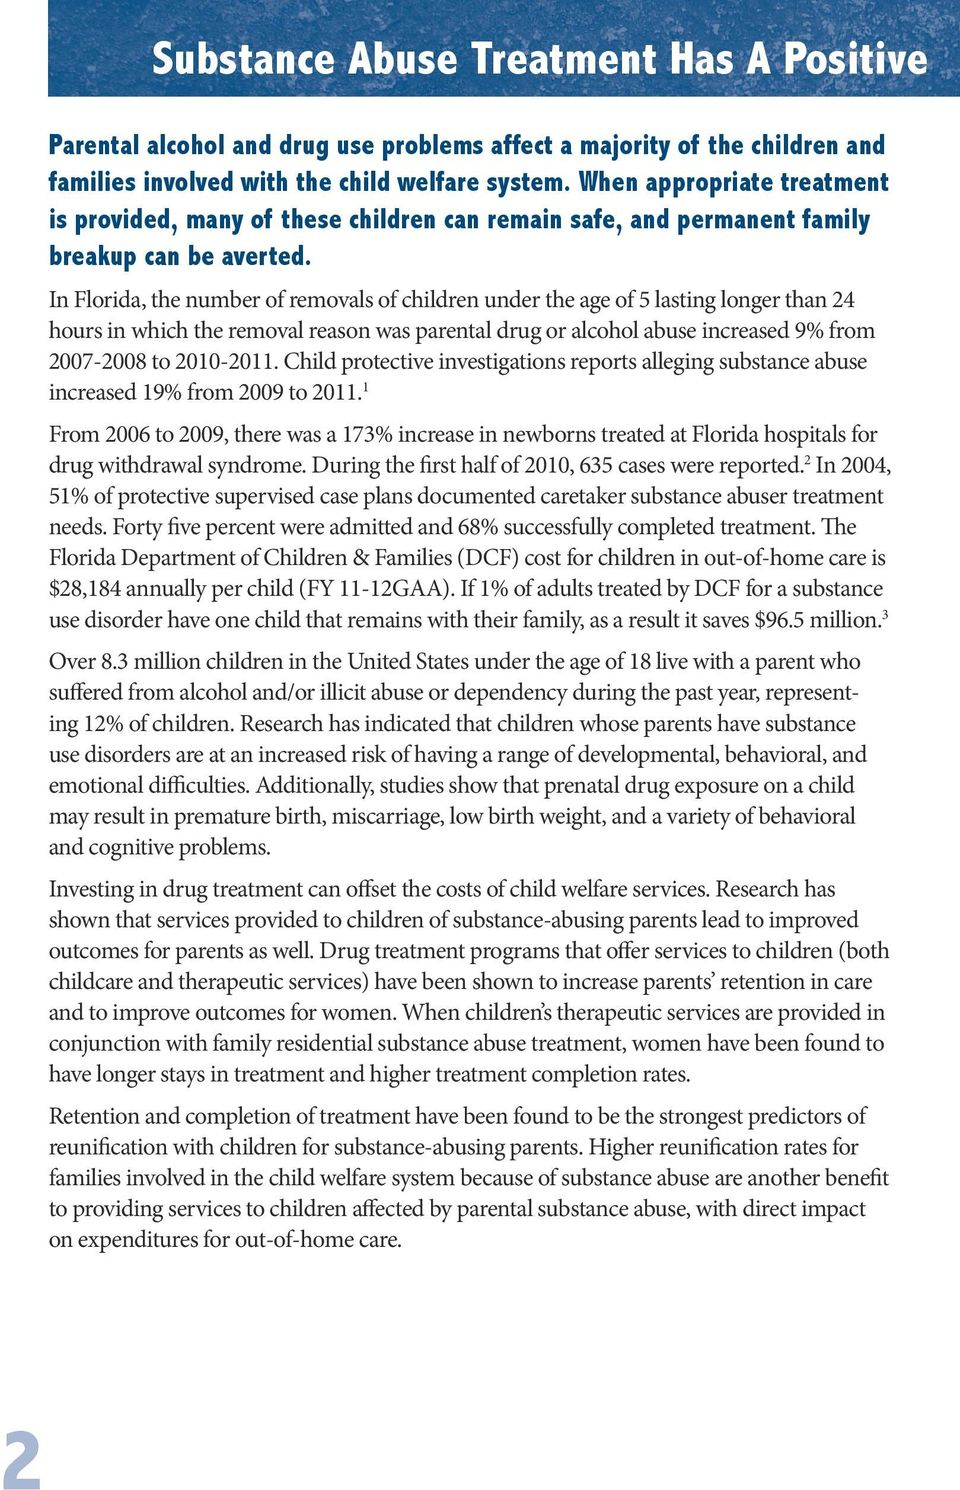 In Florida, the number of removals of children under the age of 5 lasting longer than 24 hours in which the removal reason was parental drug or alcohol abuse increased 9% from 2007-2008 to 2010-2011.